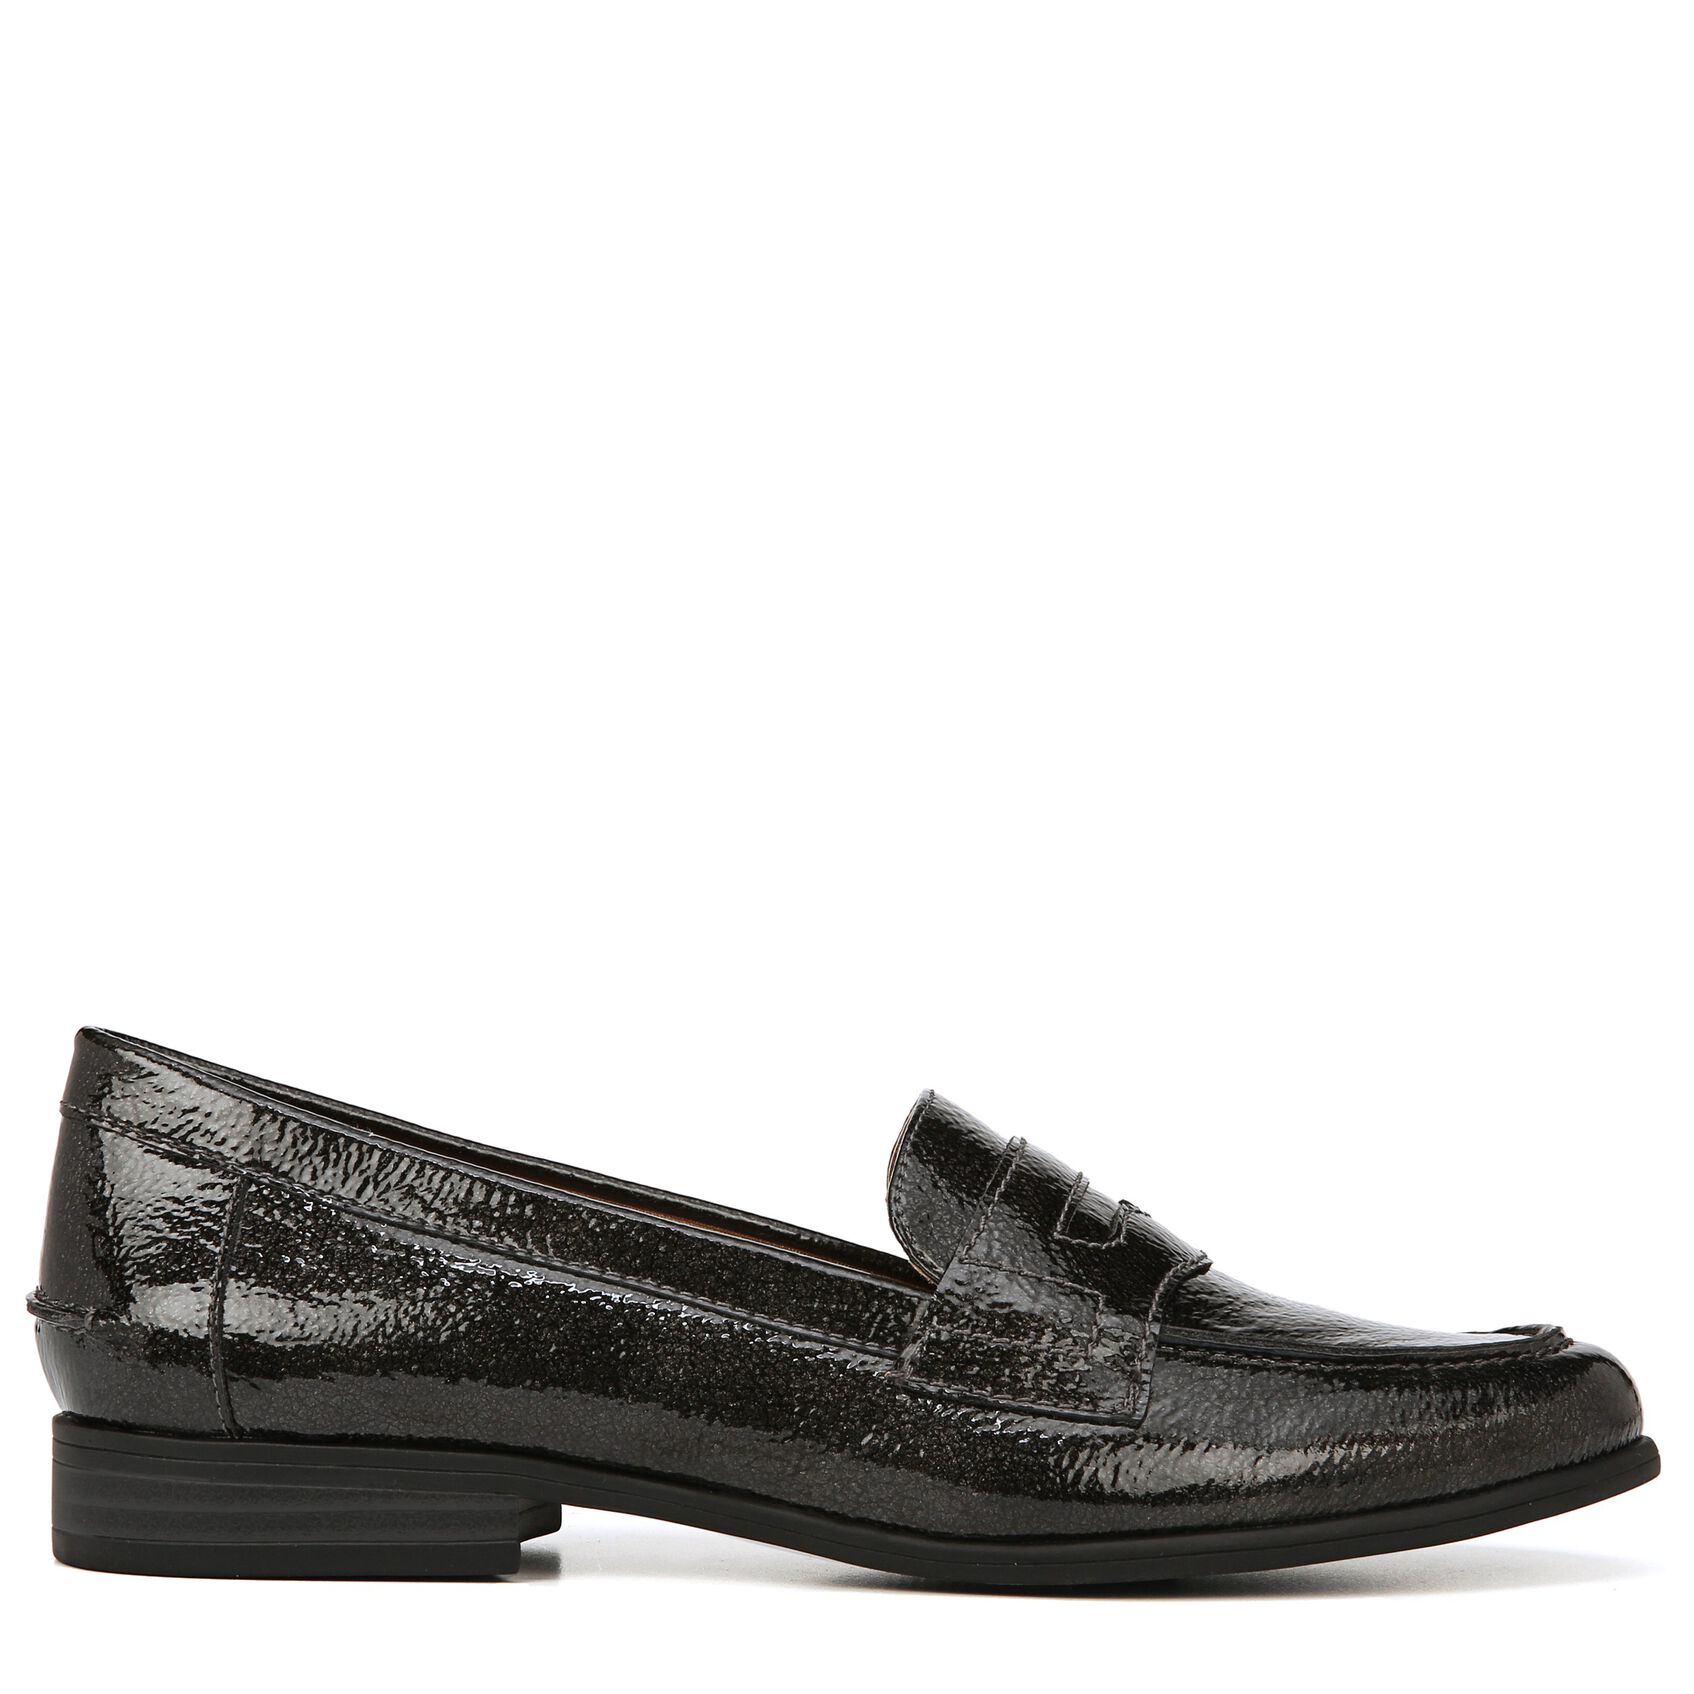 8a8f2d476a8 ... LifeStride Madison Penny Loafers. Previous